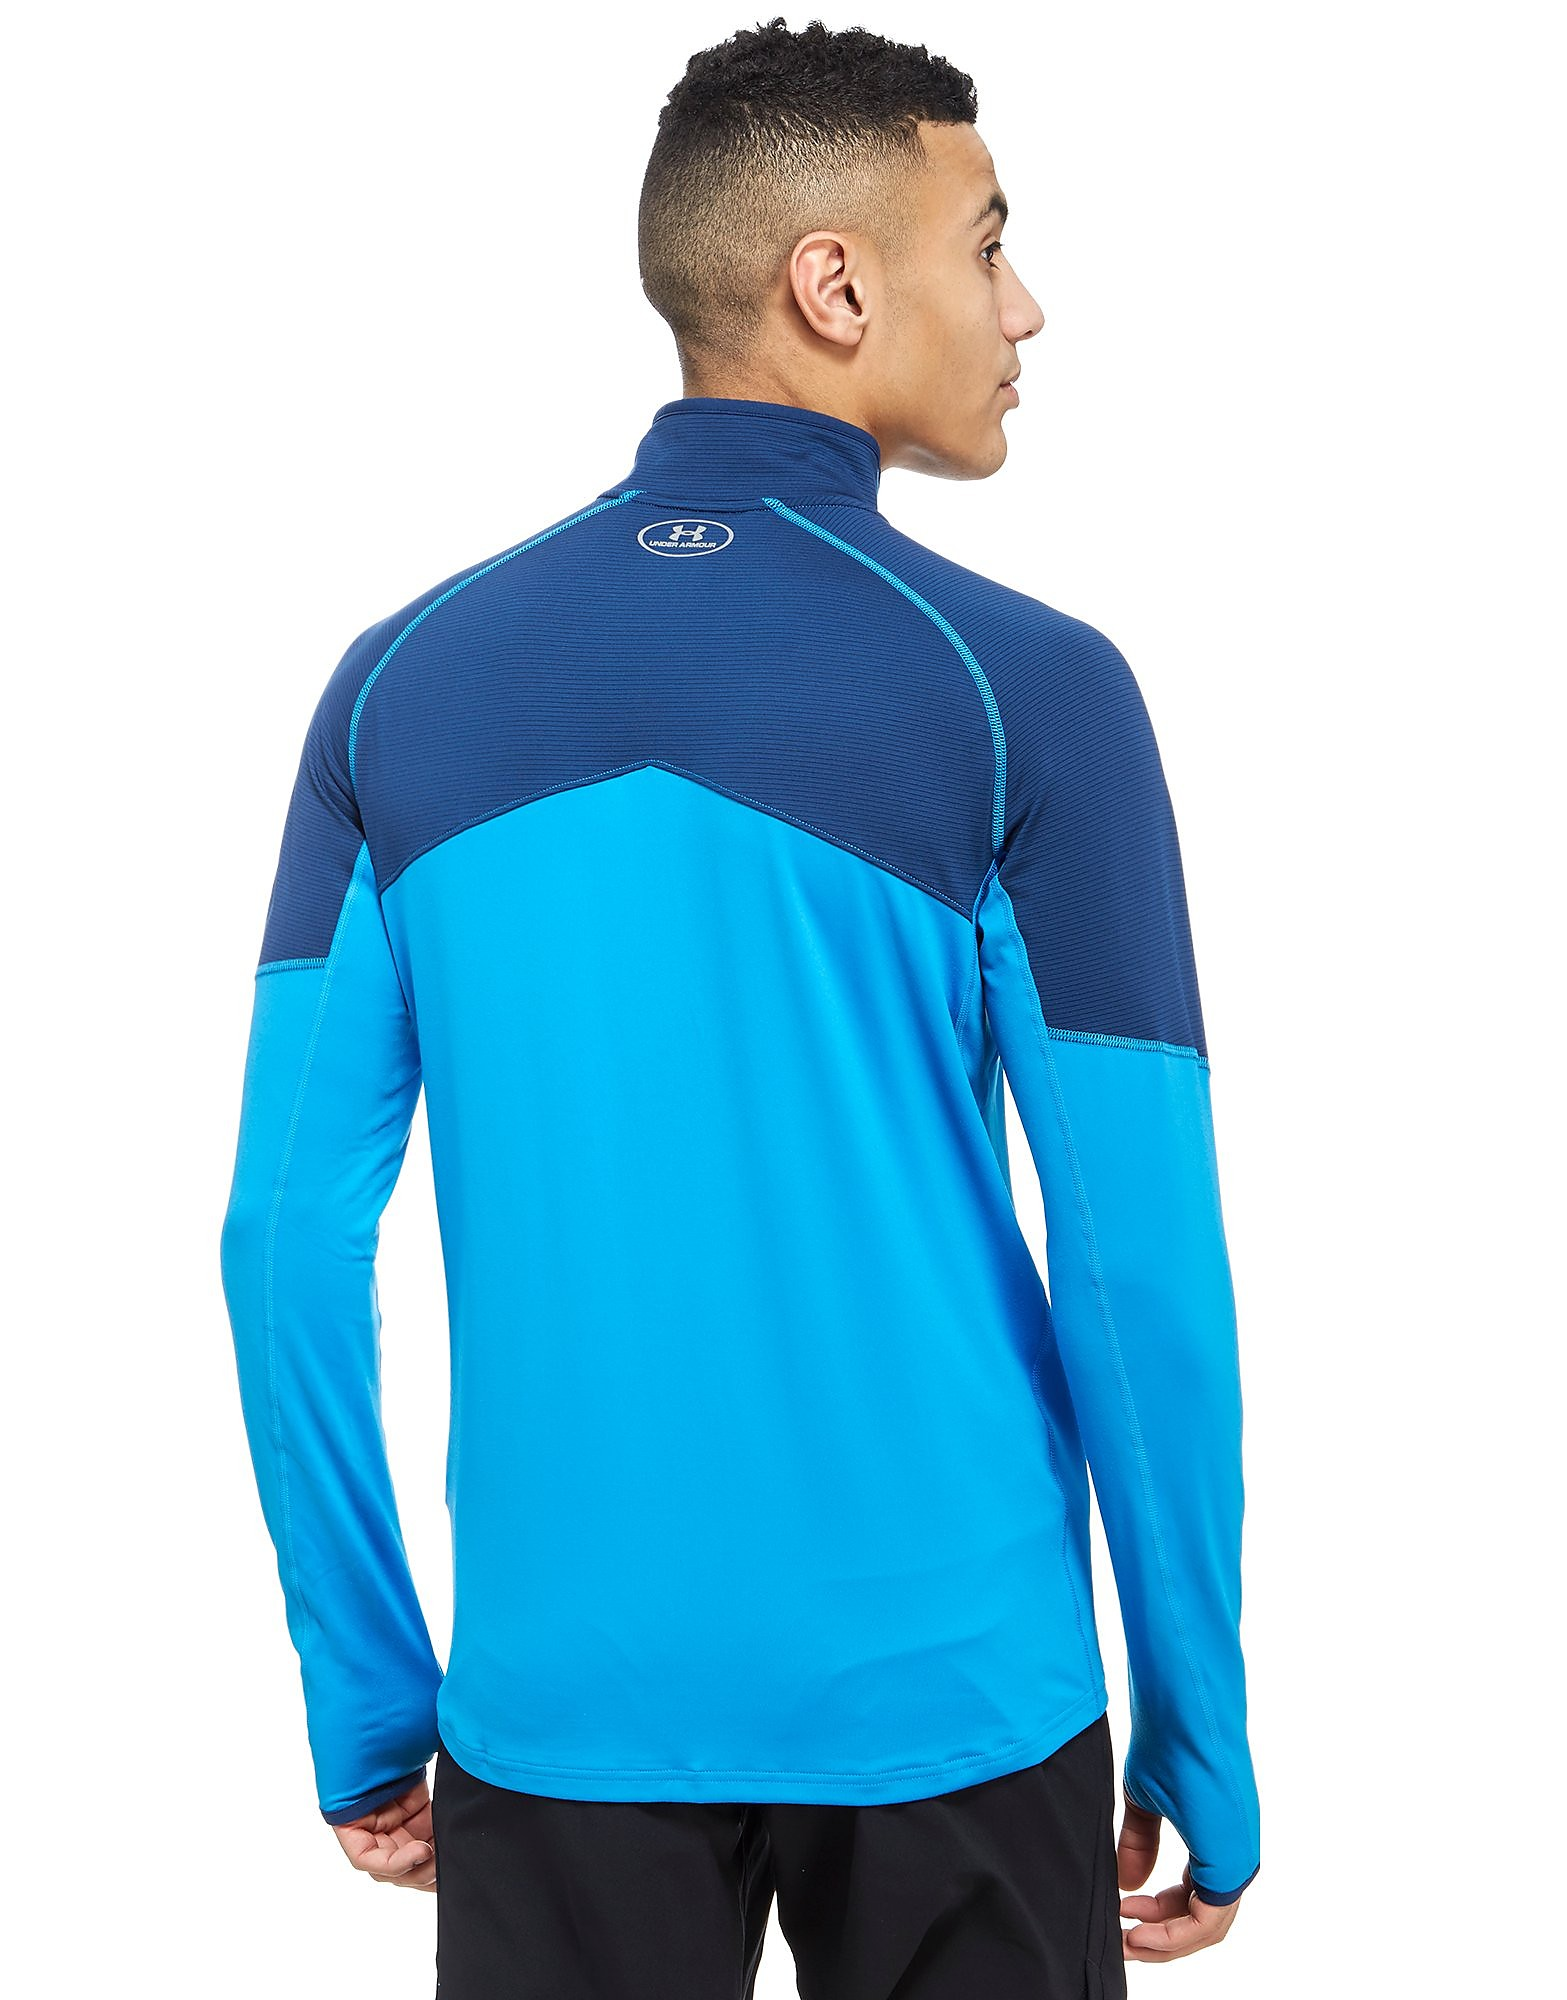 Under Armour NoBreaks Run Quarter Zip Top